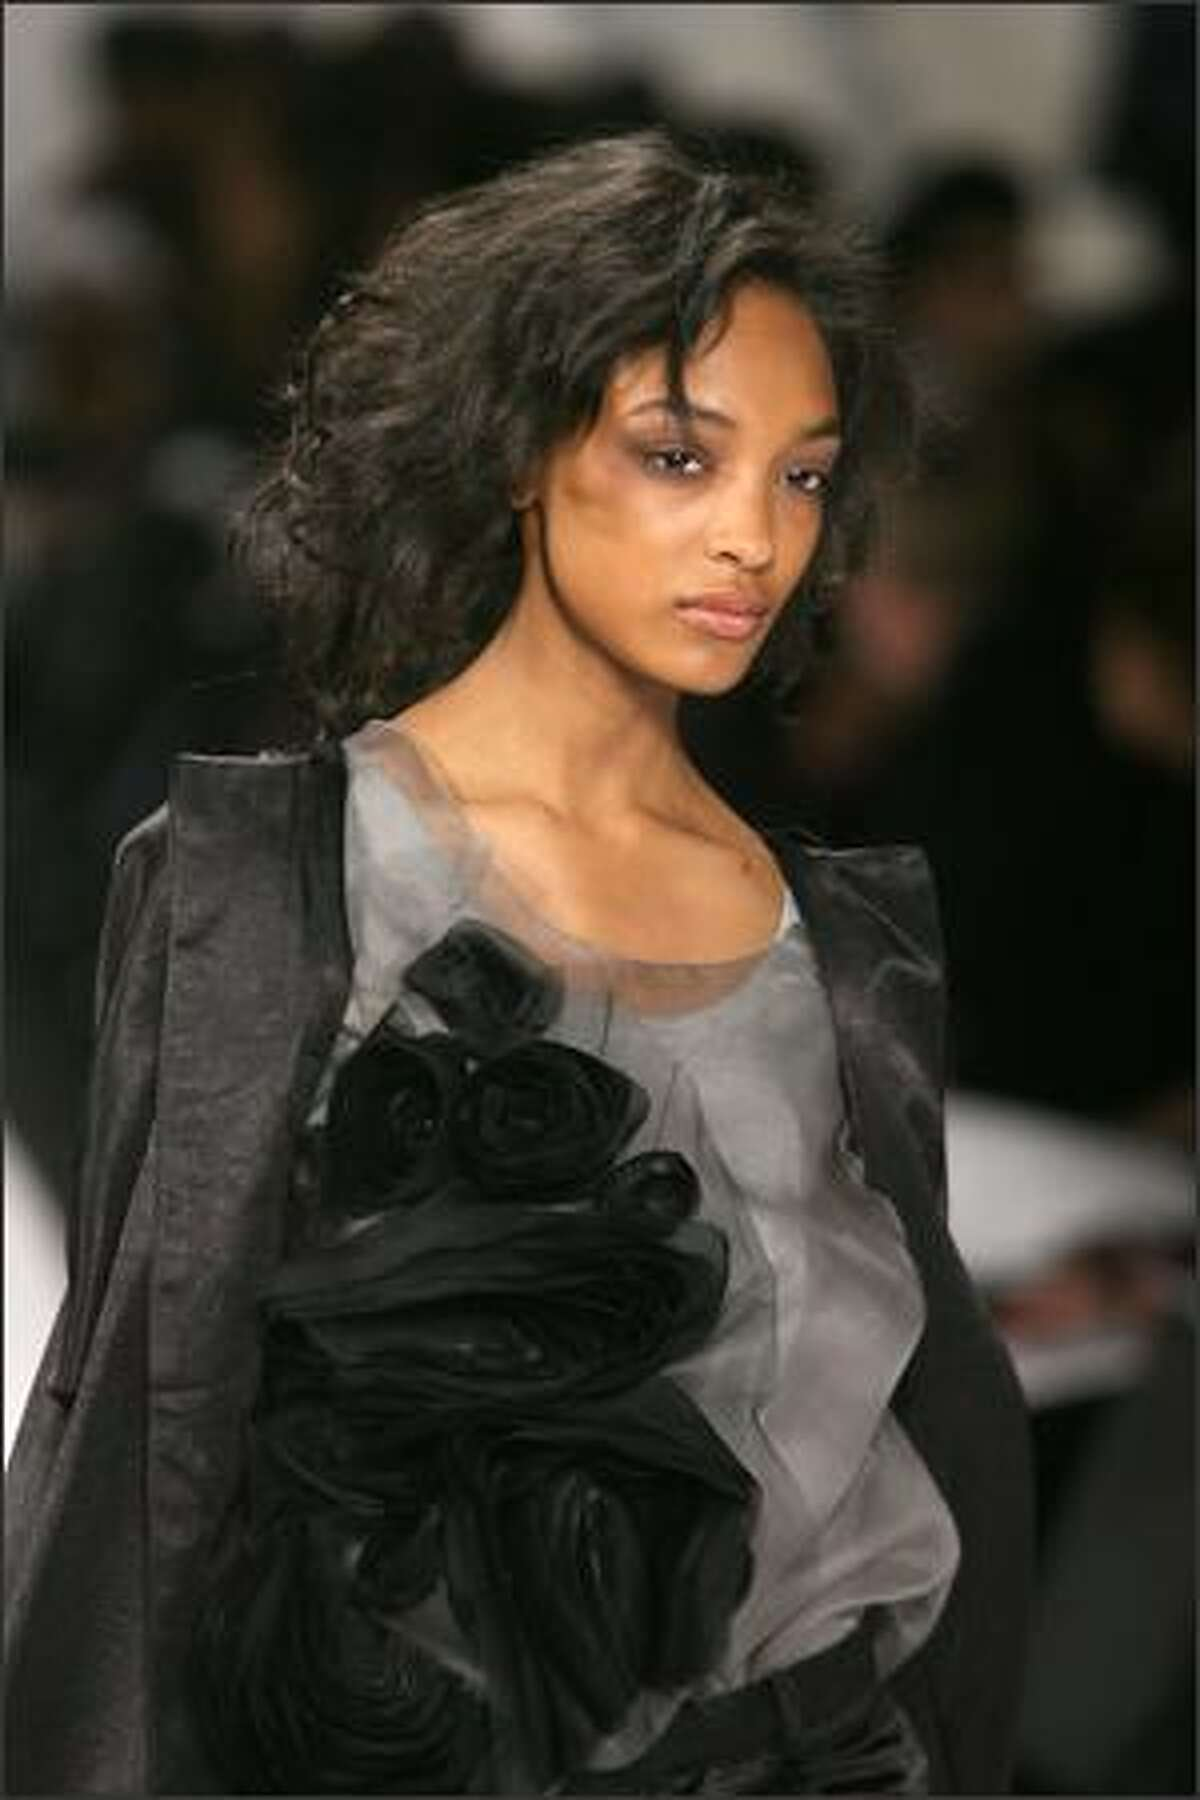 A model walks the runway at the Vera Wang Fall 2008 fashion show during Mercedes-Benz Fashion Week Fall 2008 at The Tent at Bryant Park in New York City.